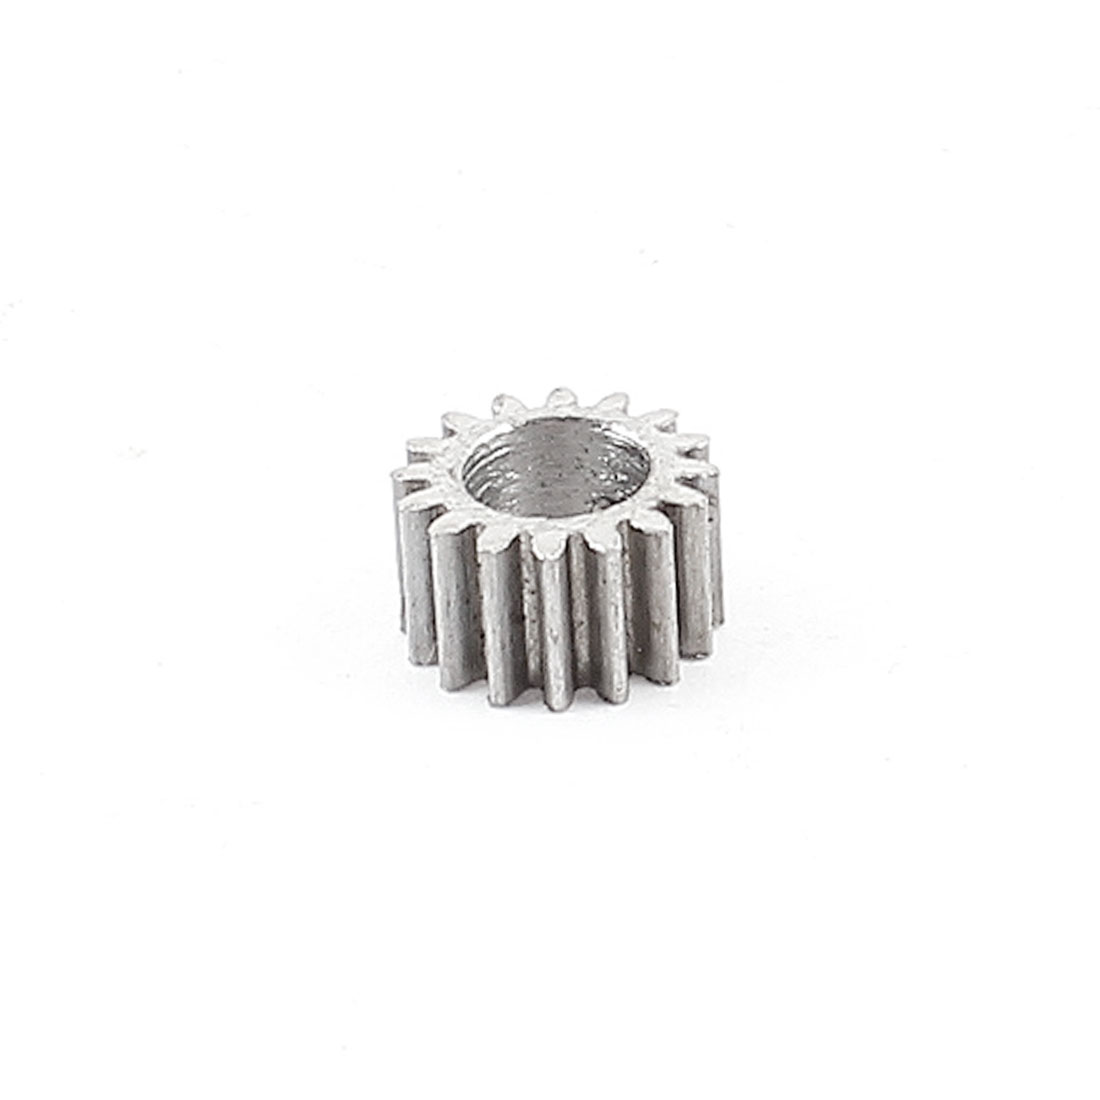 5mm Hole Dia 16 Teeth 0.48mm Pitch Metal Spur Gear Wheel for Electrical Machine